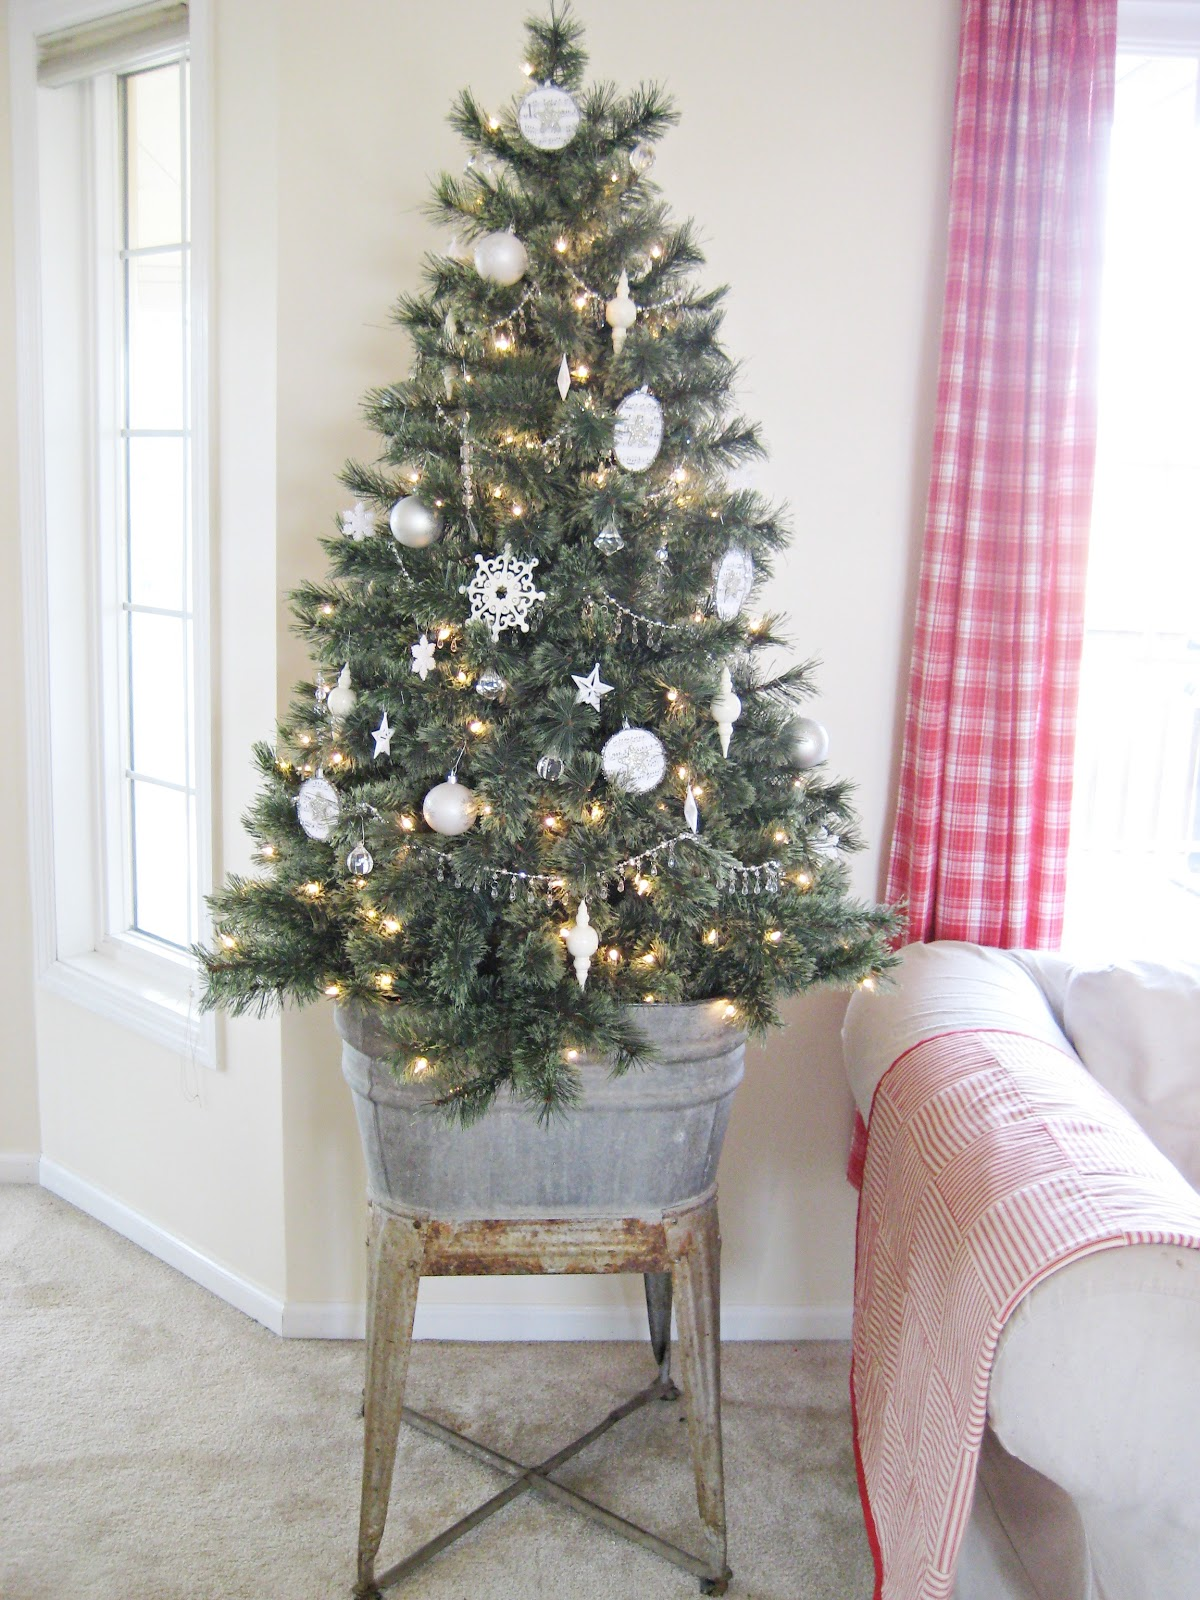 Decorating Ideas > Small Space Holiday Decor  Decorating Small Spaces For  ~ 155036_Holiday Decorating Ideas For Large Spaces